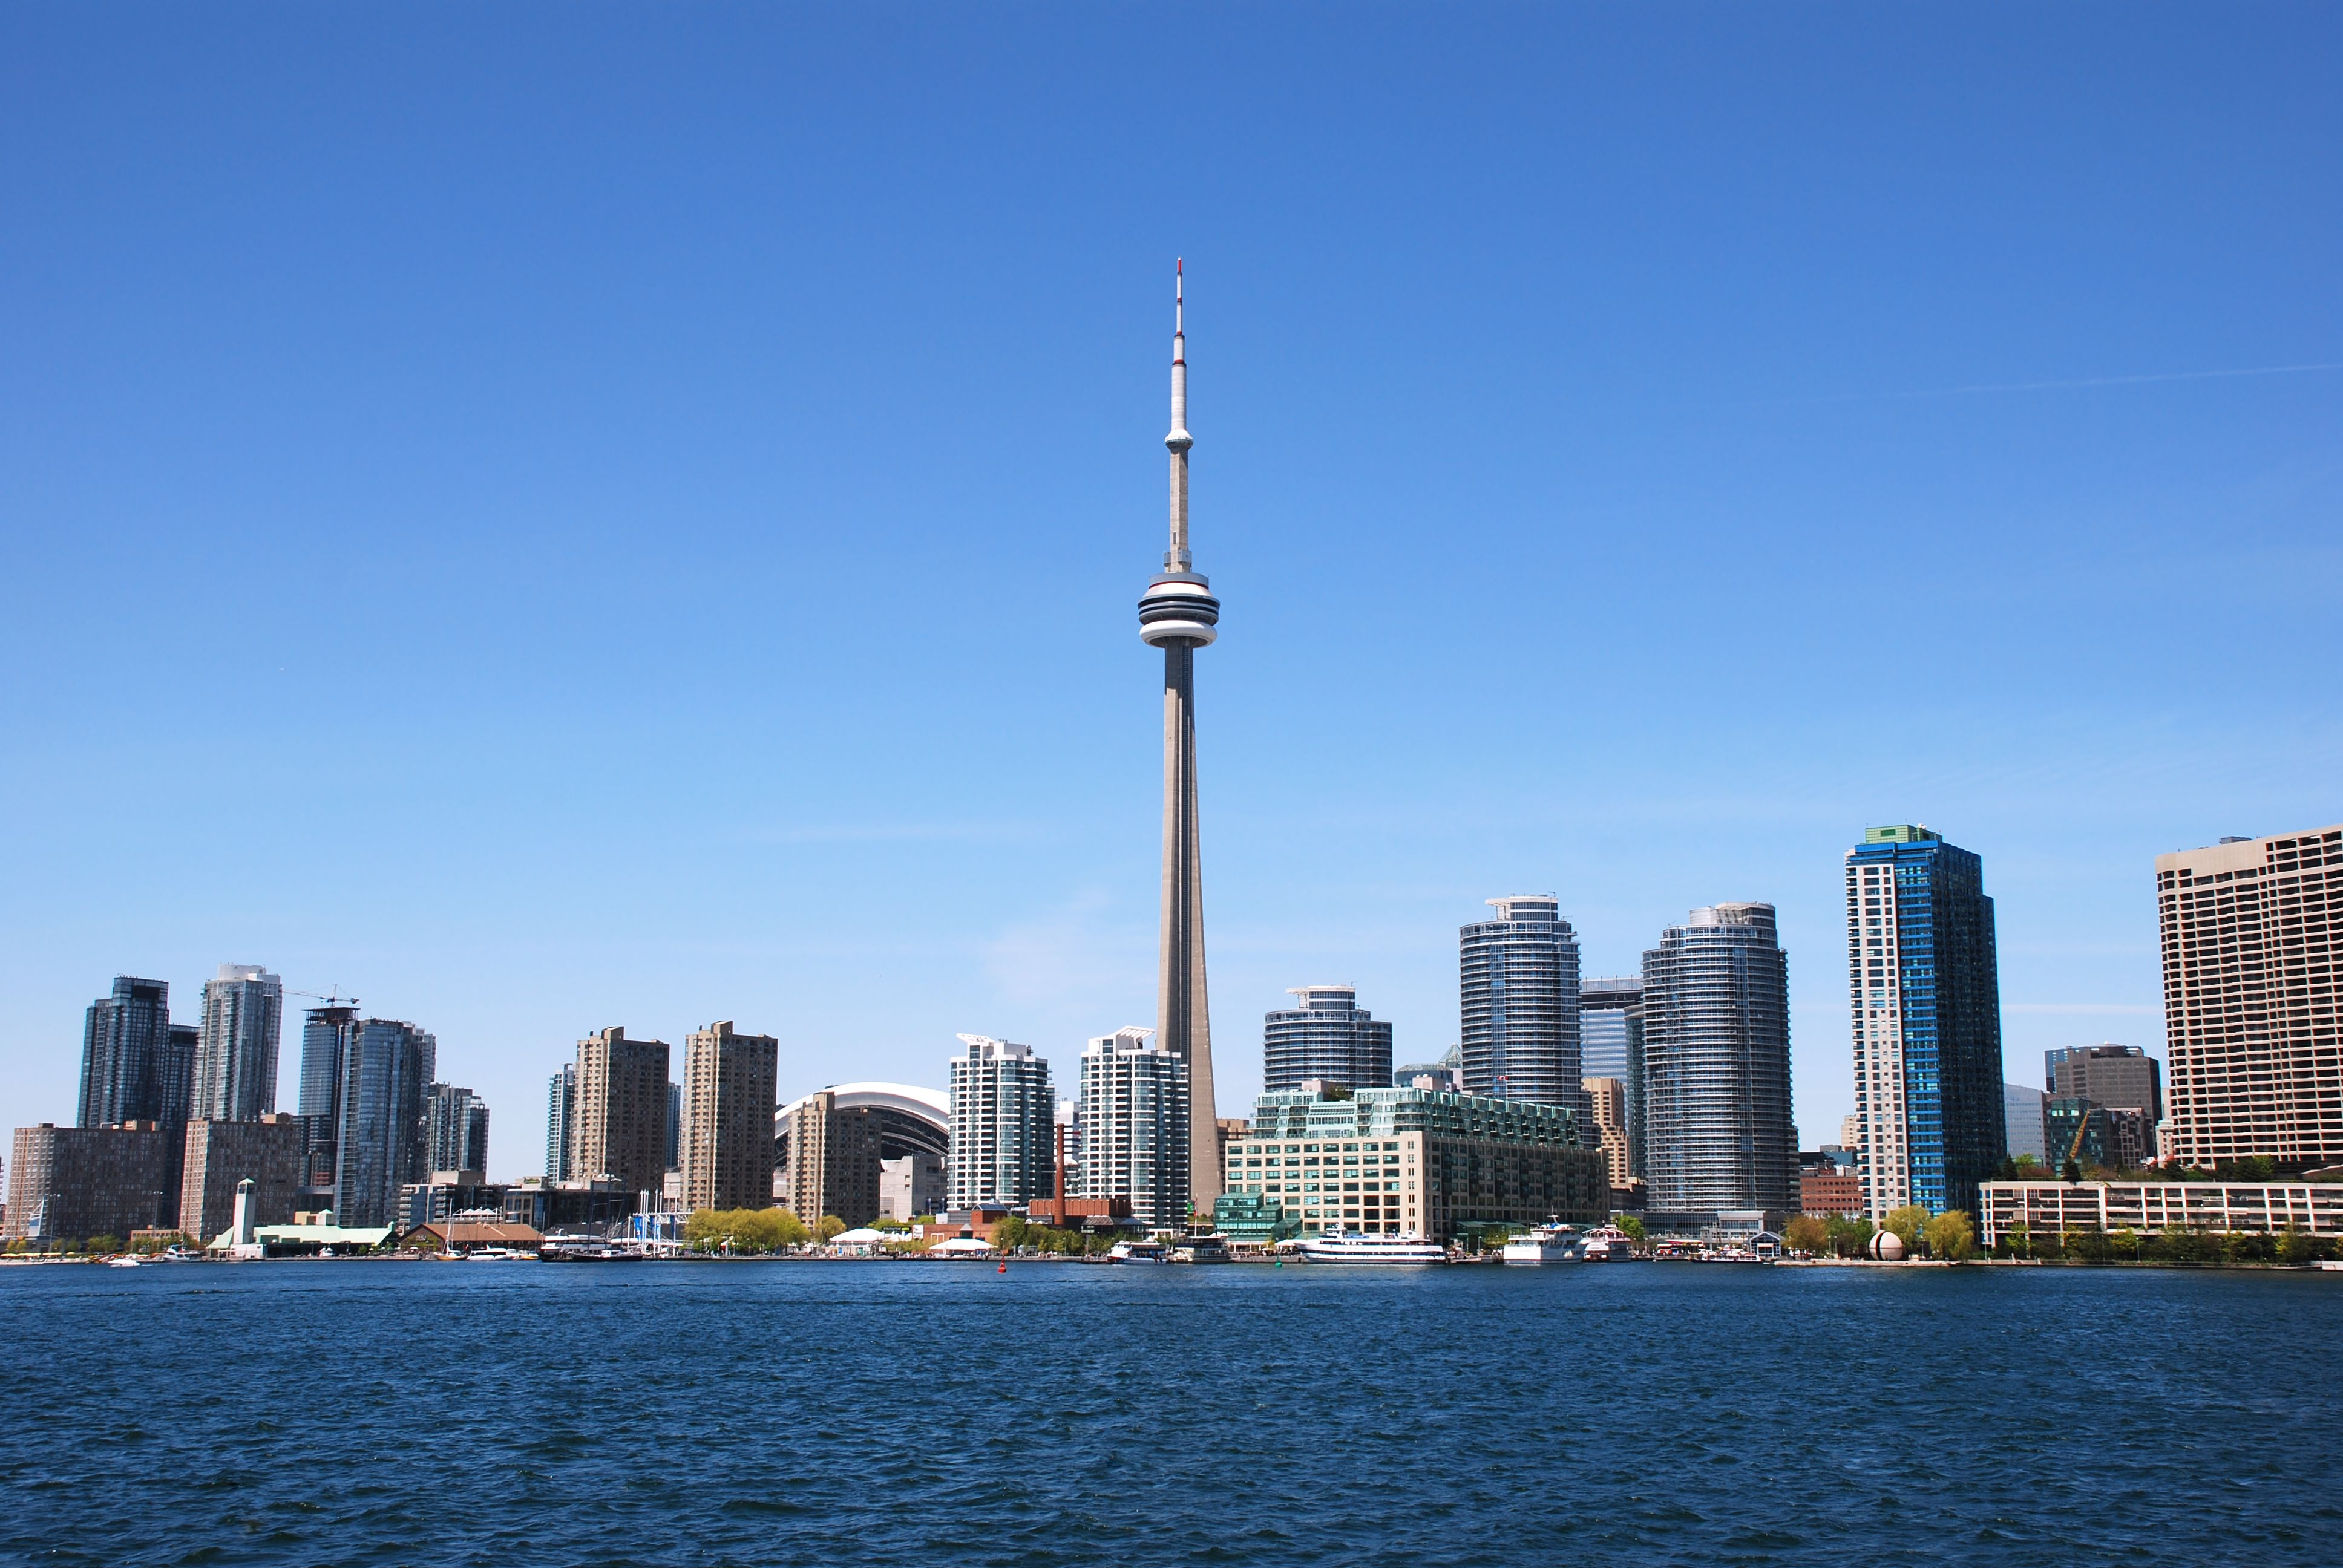 Canadian city skyline